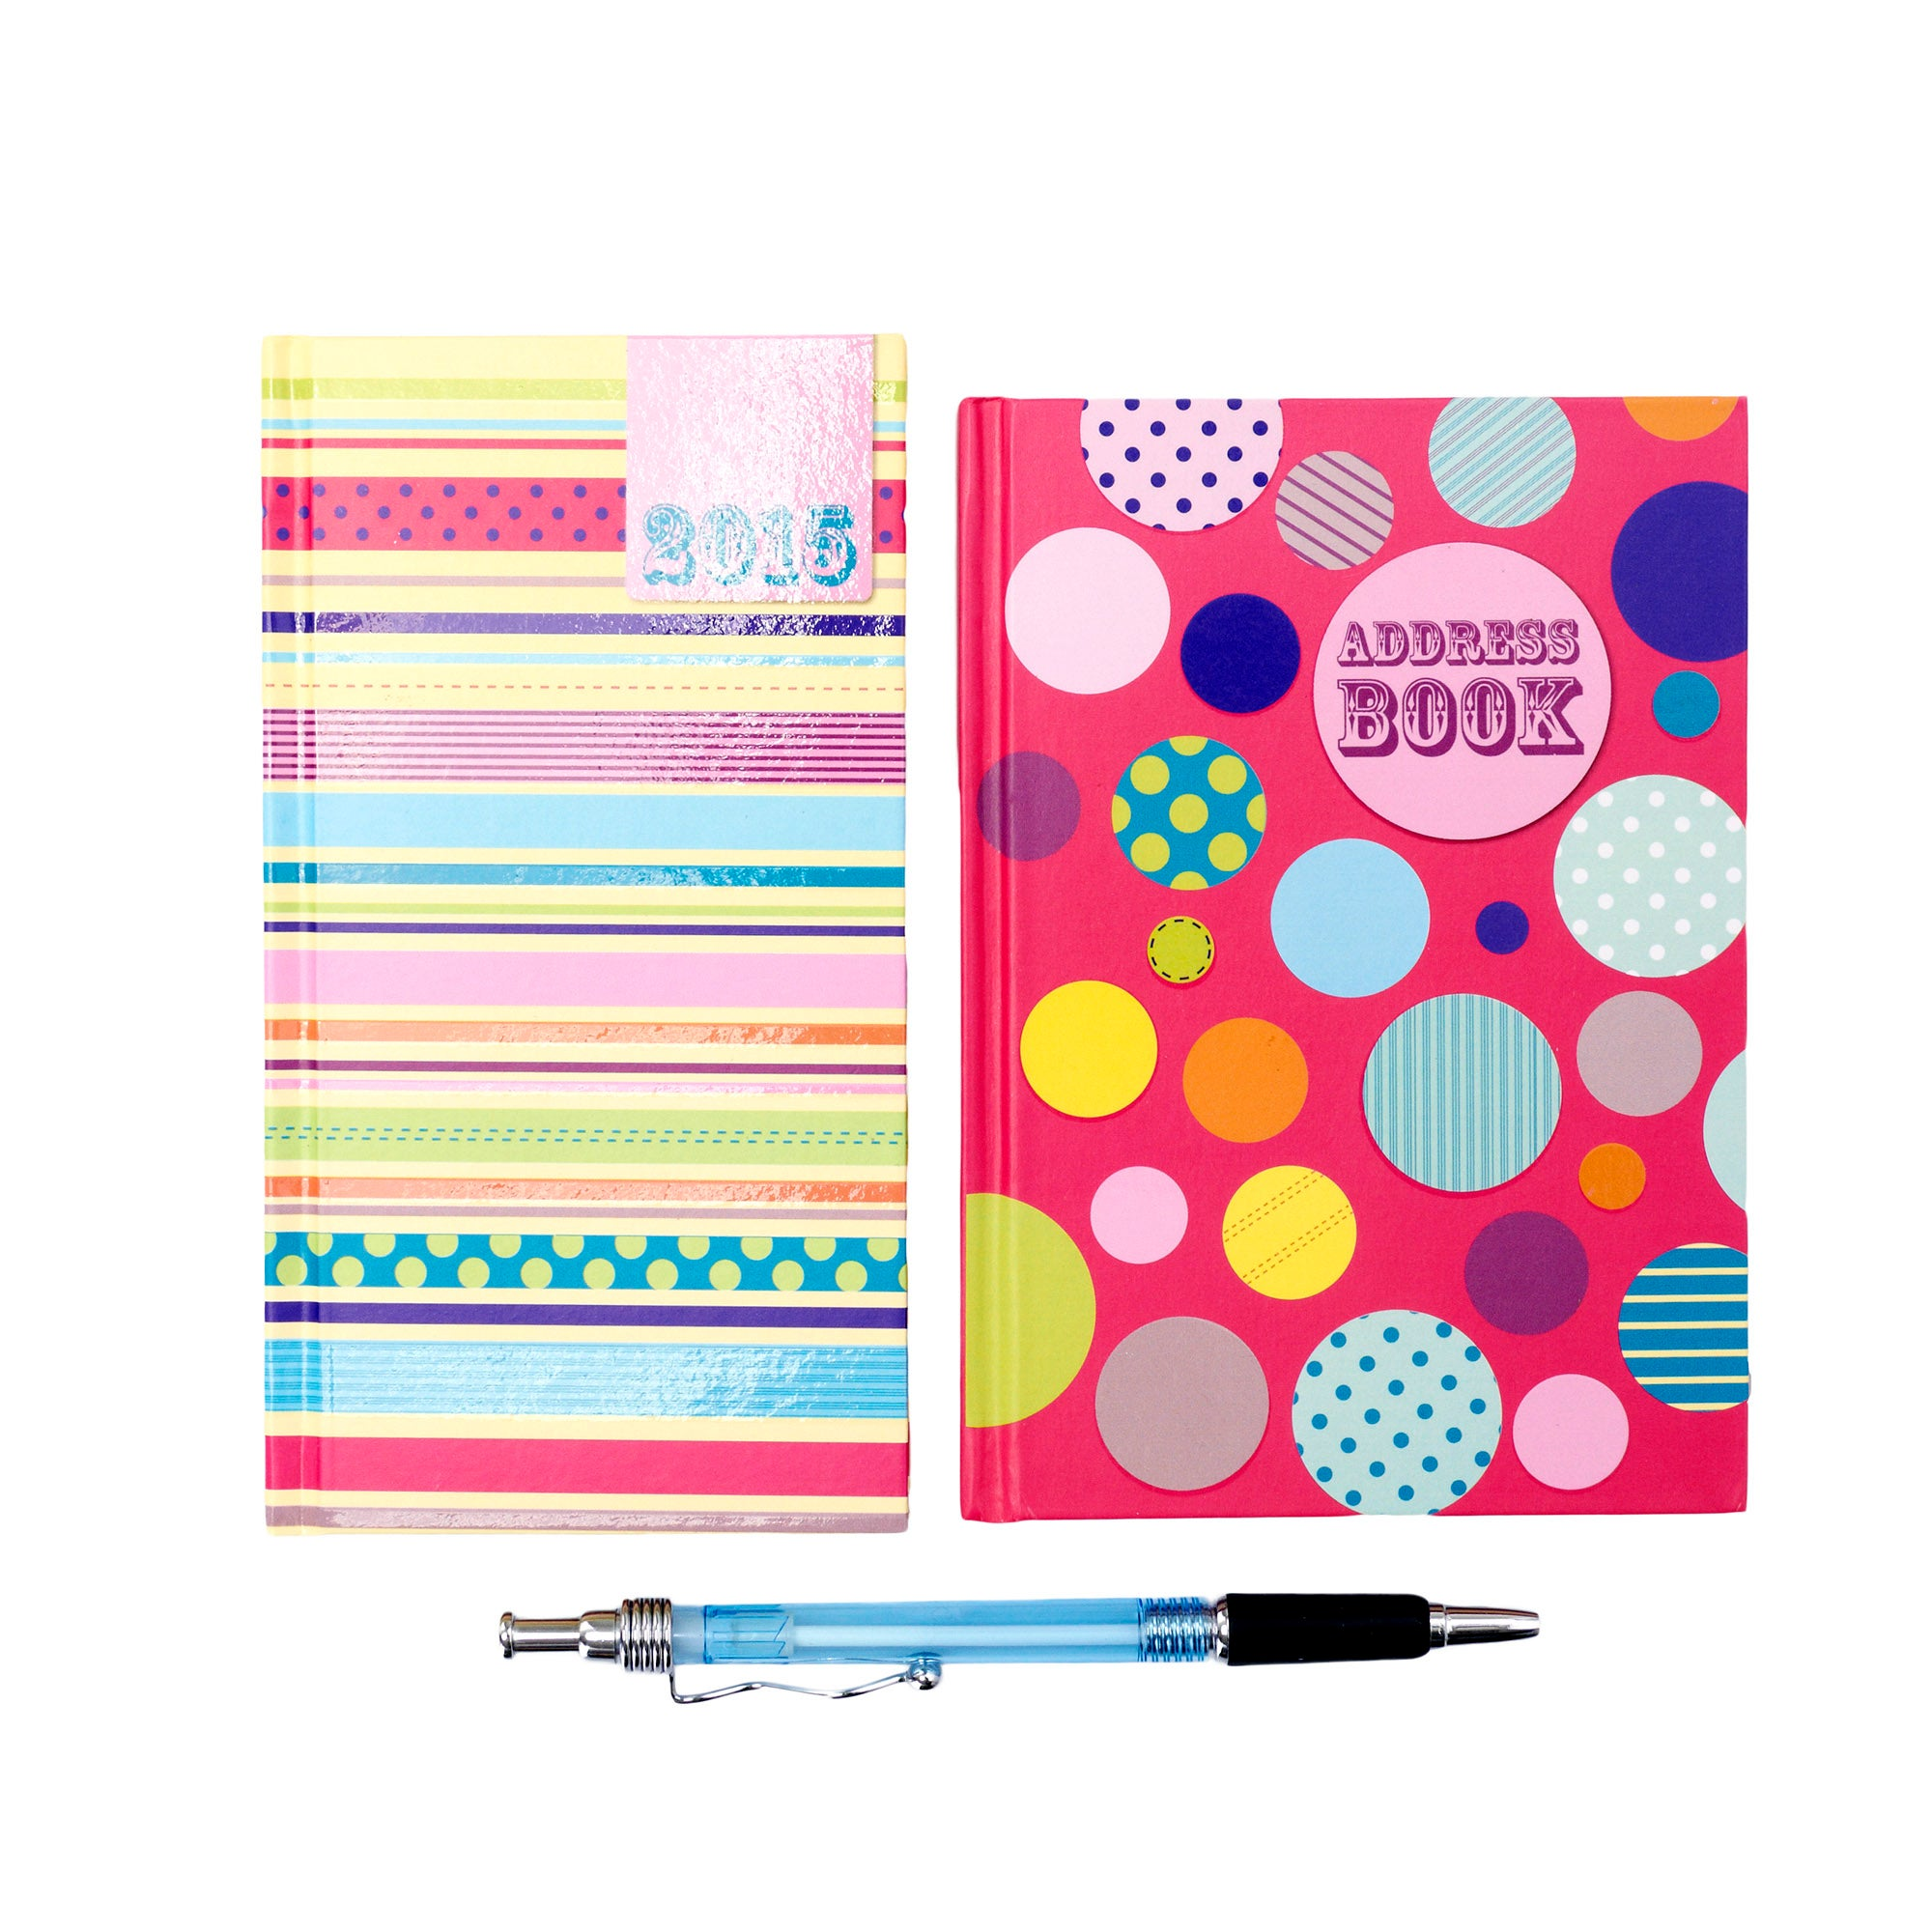 Spots with Stripes 2015 Diary and Address Book